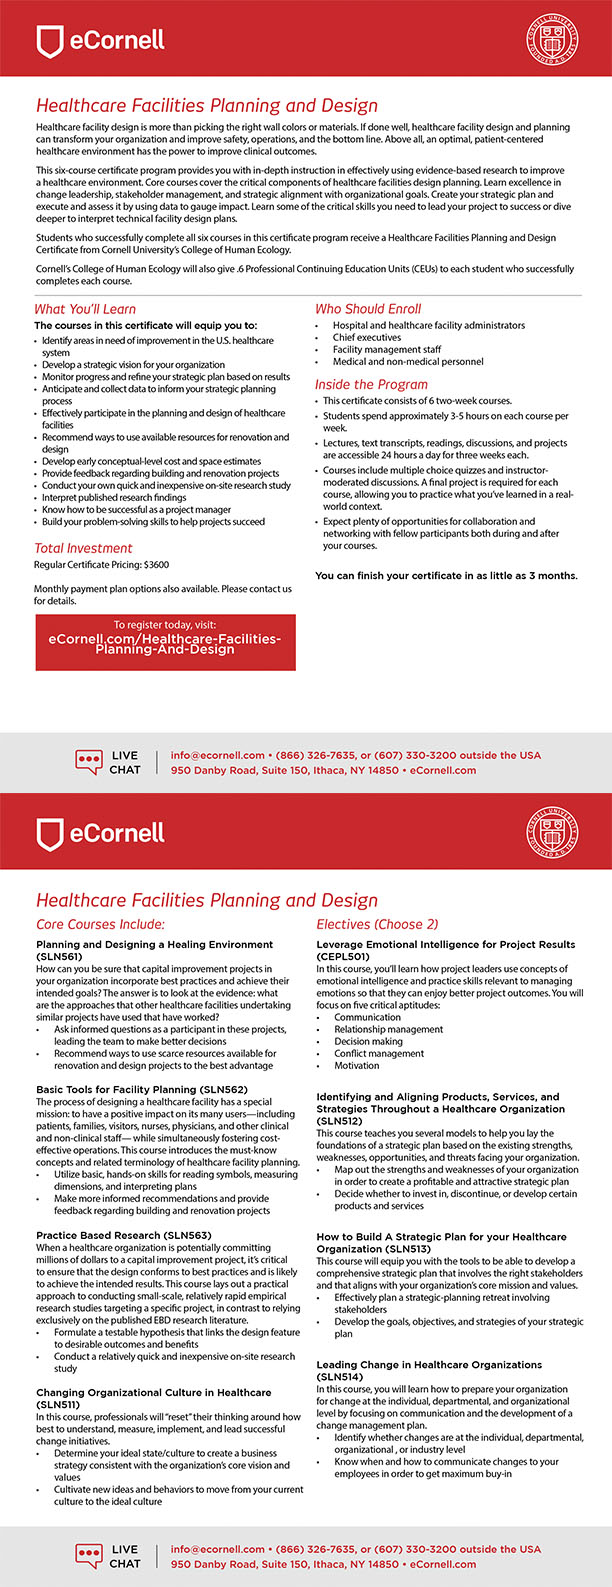 Healthcare Facilities Planning and Design Flyer